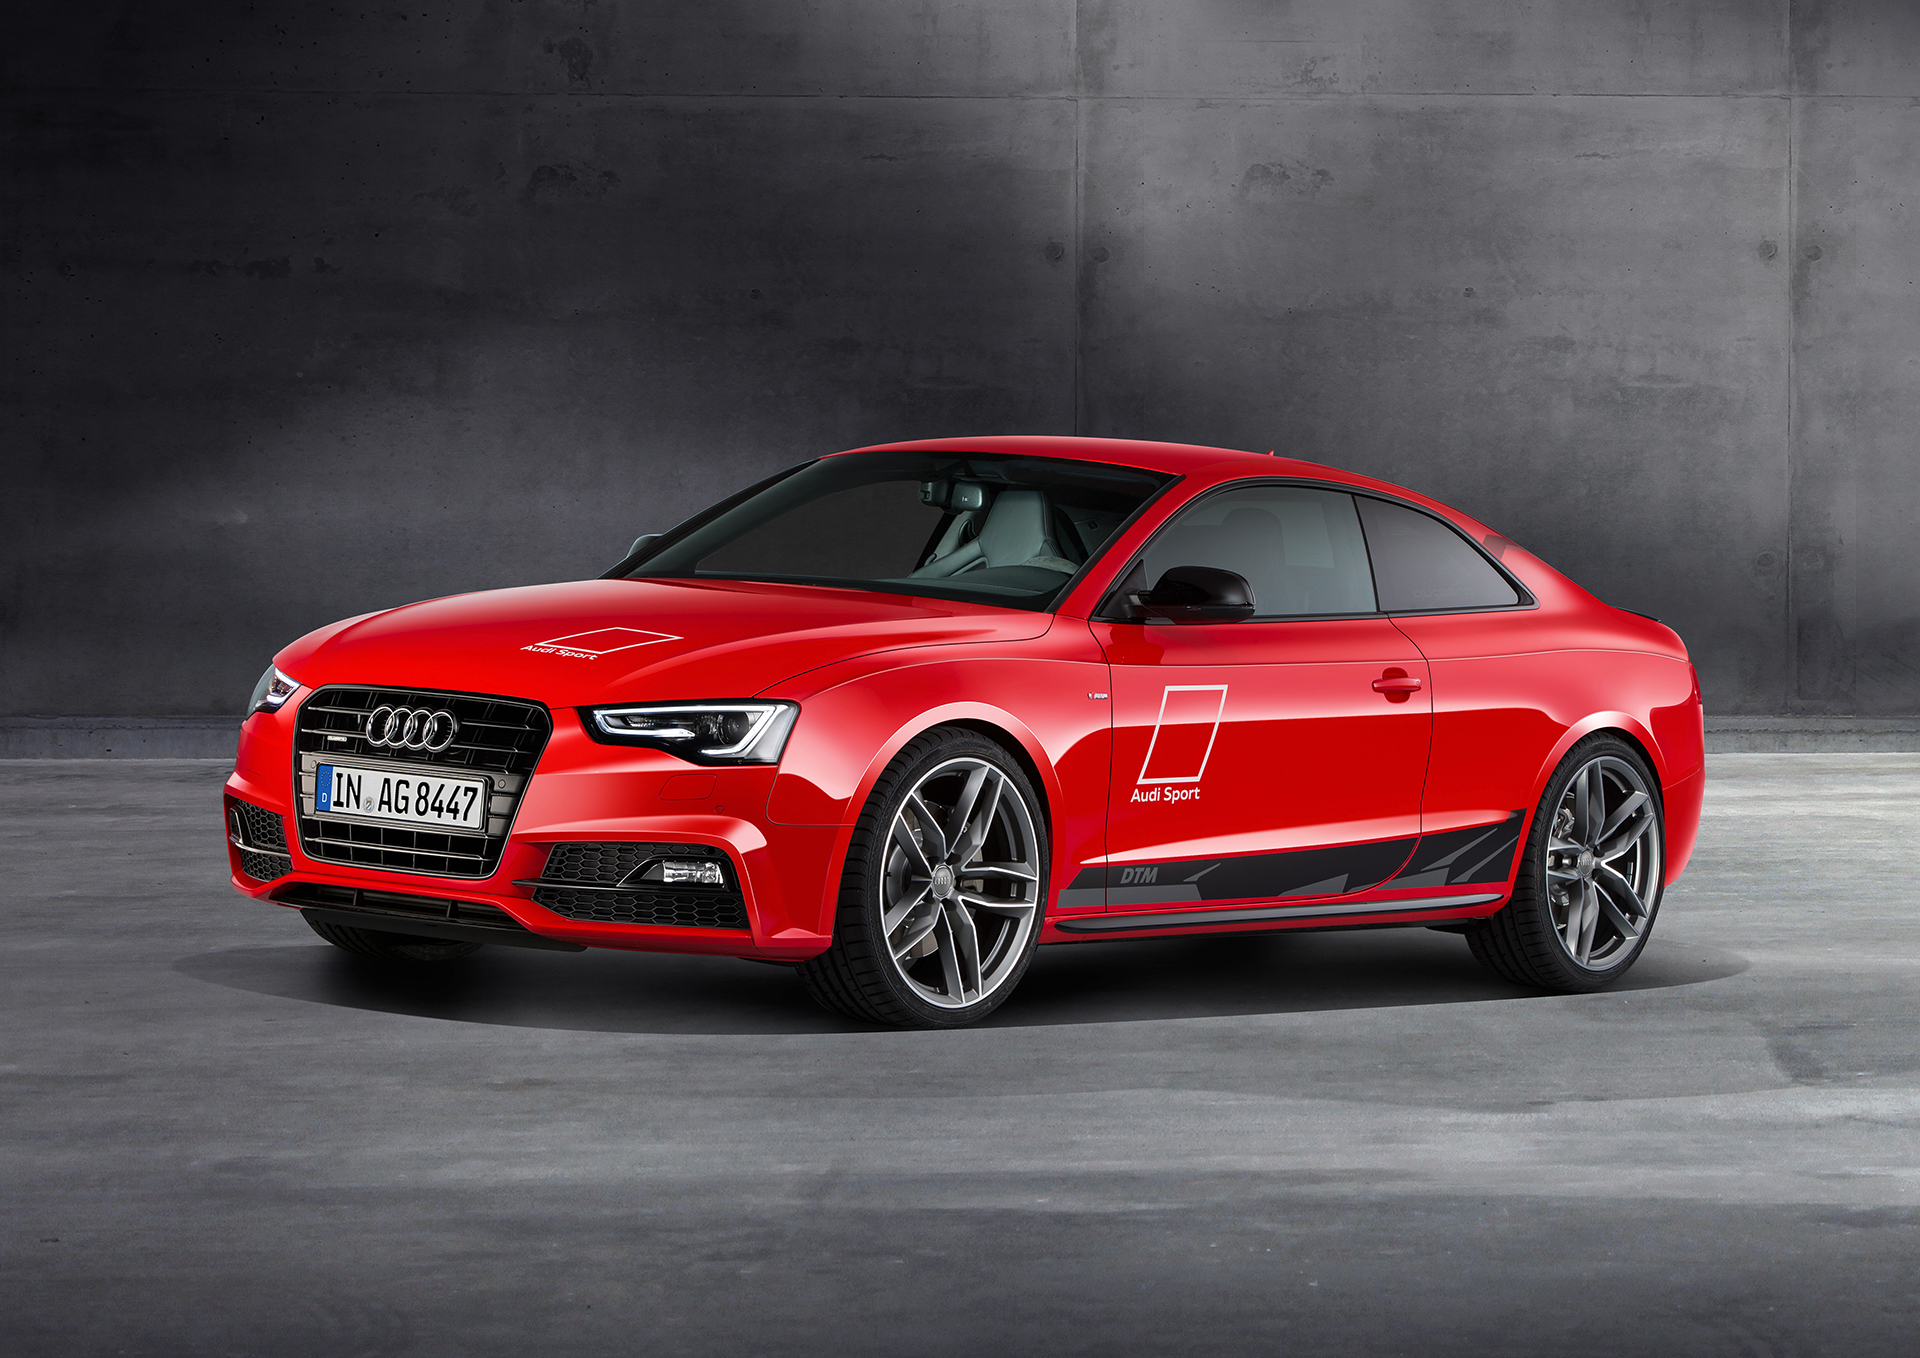 Audi A5 DTM selection - 2015 - profil avant / front side-face